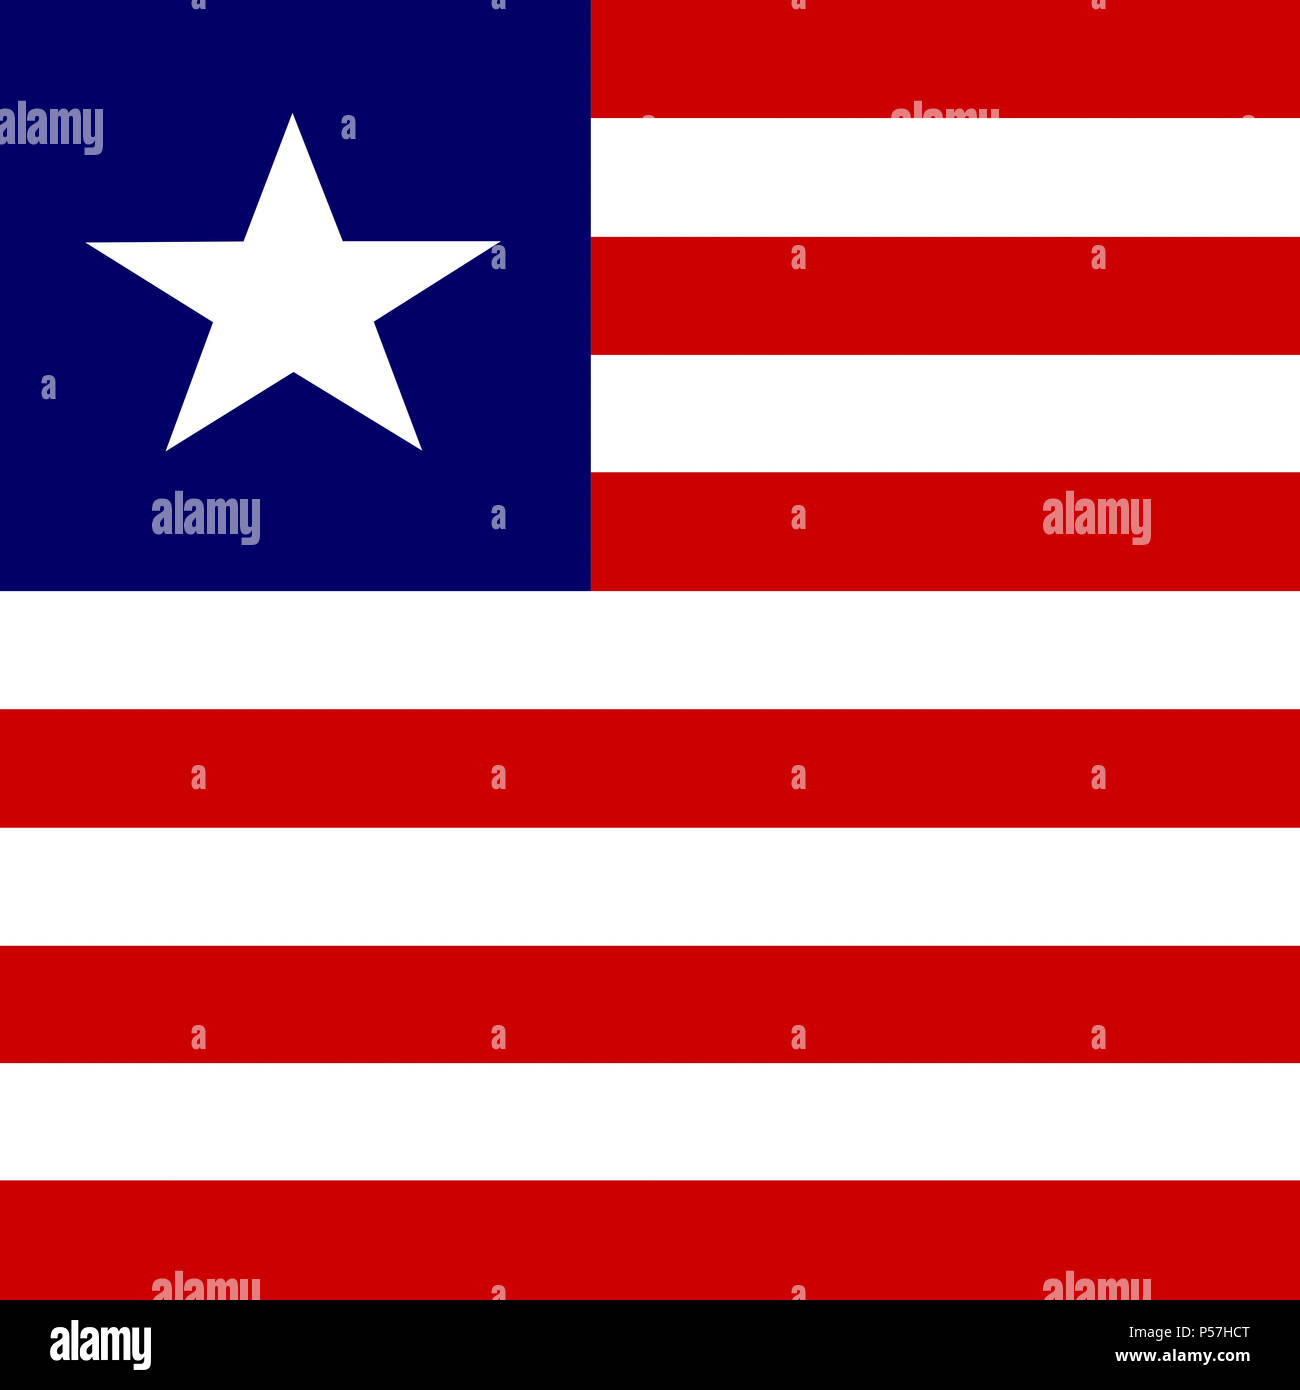 Official national flag of Liberia - Stock Image